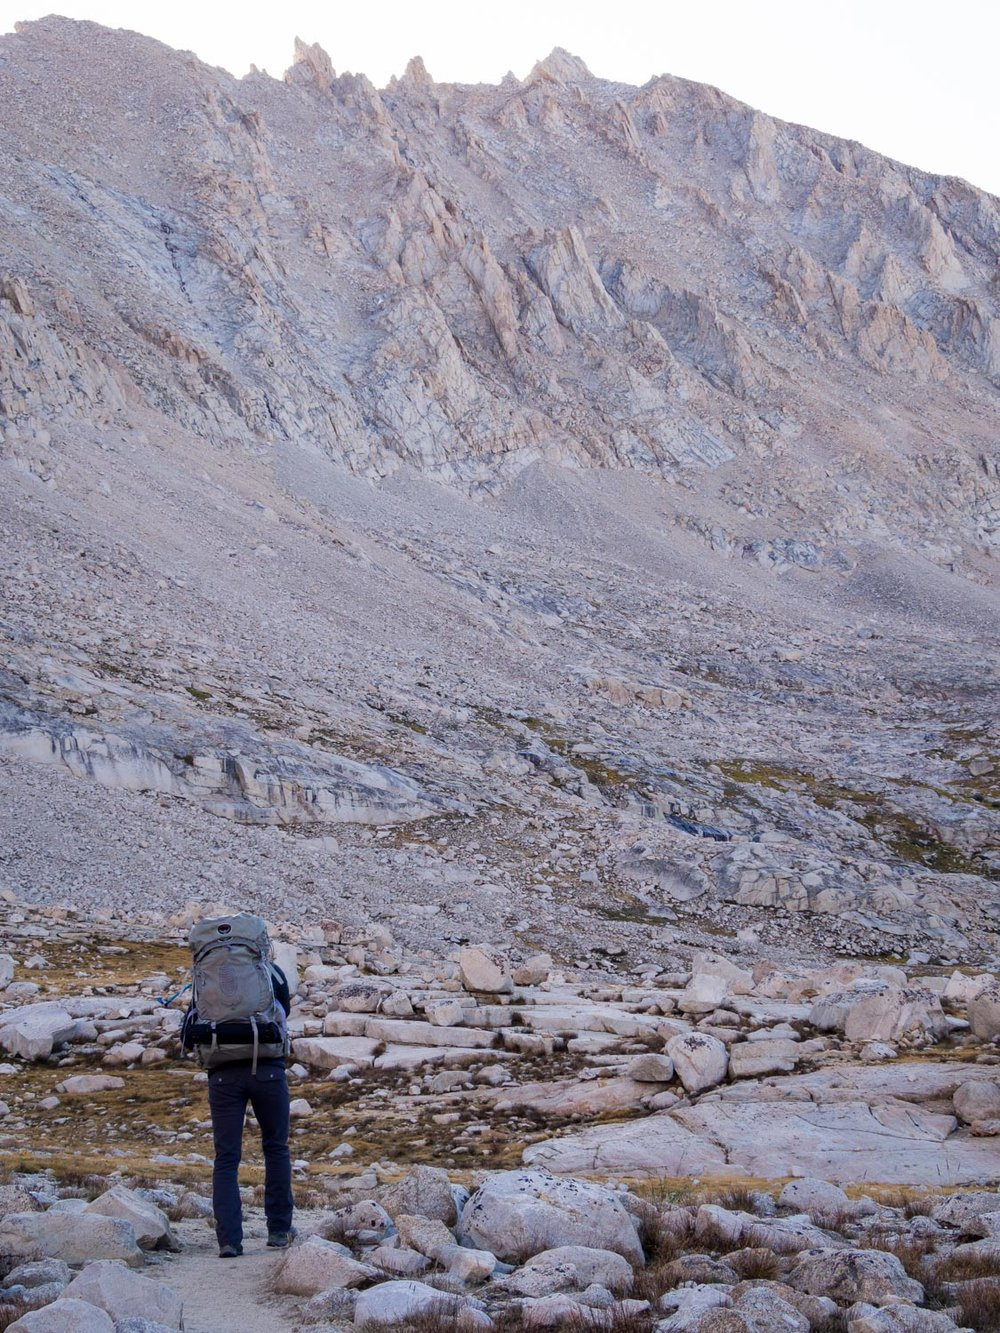 high-sierra-trail-guitar-lake-whitney-9210783.jpg